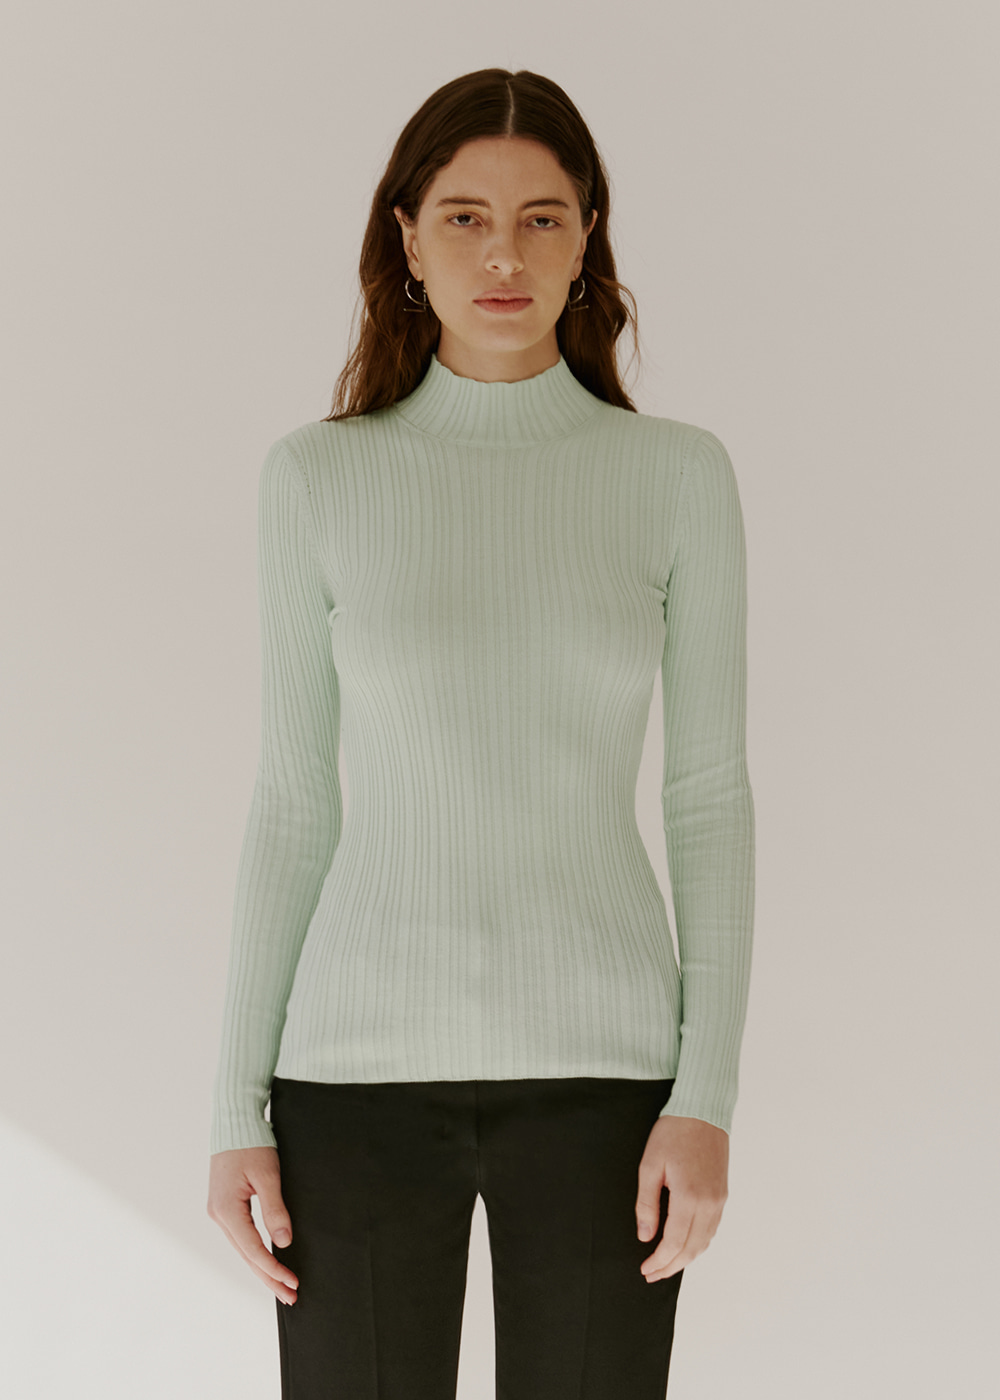 COTTON-BLEND RIBBED KNIT - MINT CREAM